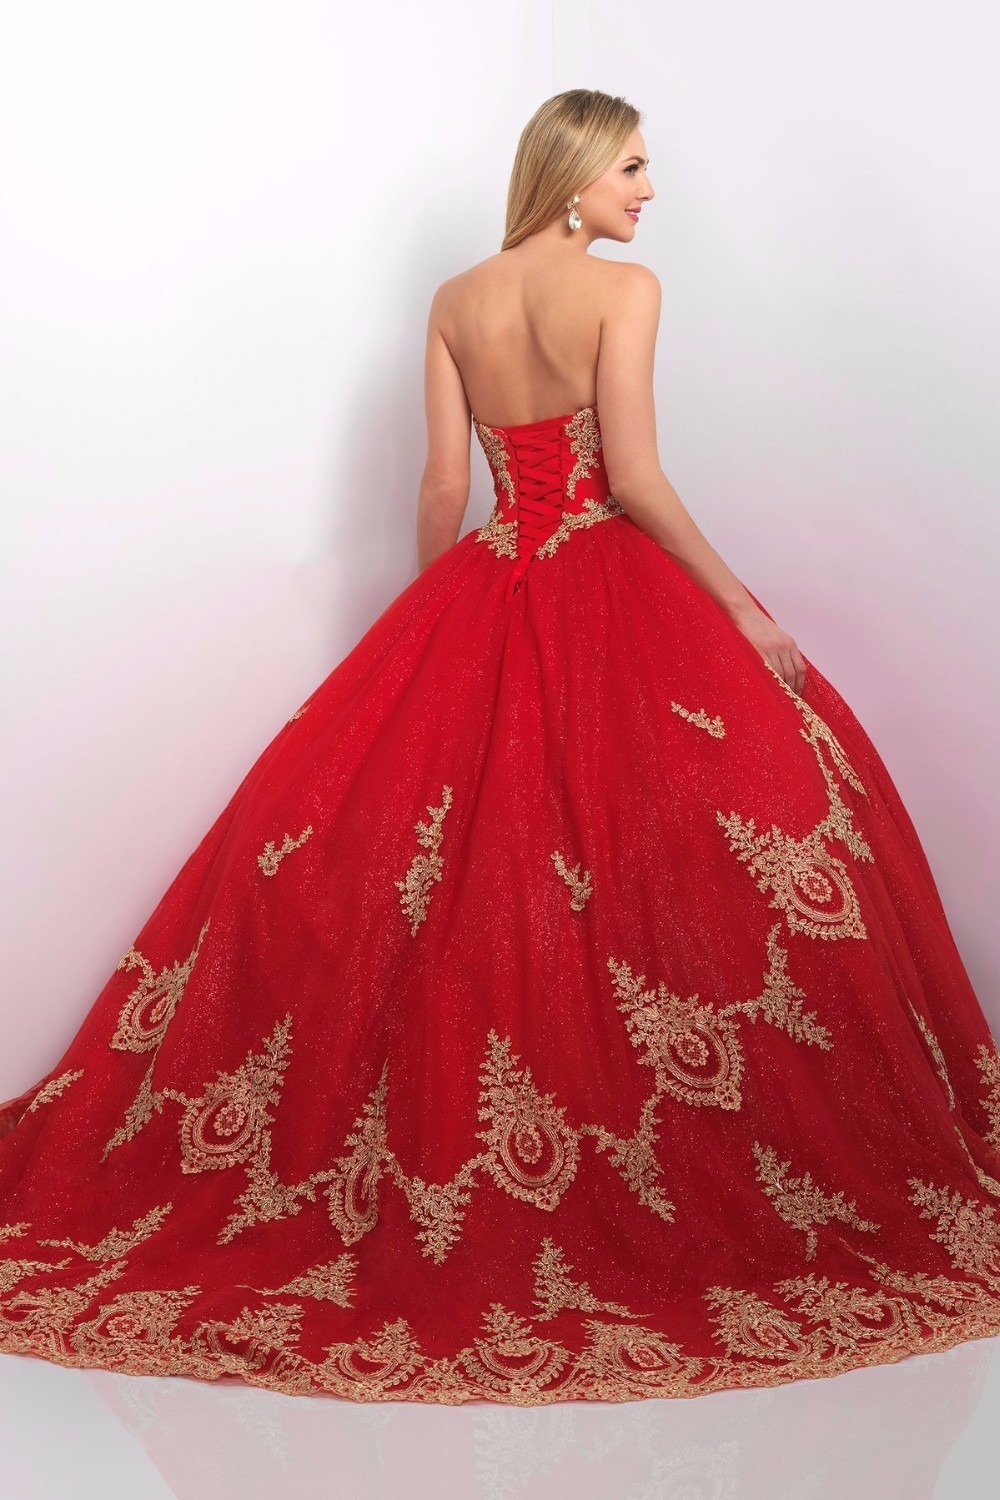 Fashion week Red and quinceanera gold dresses for girls